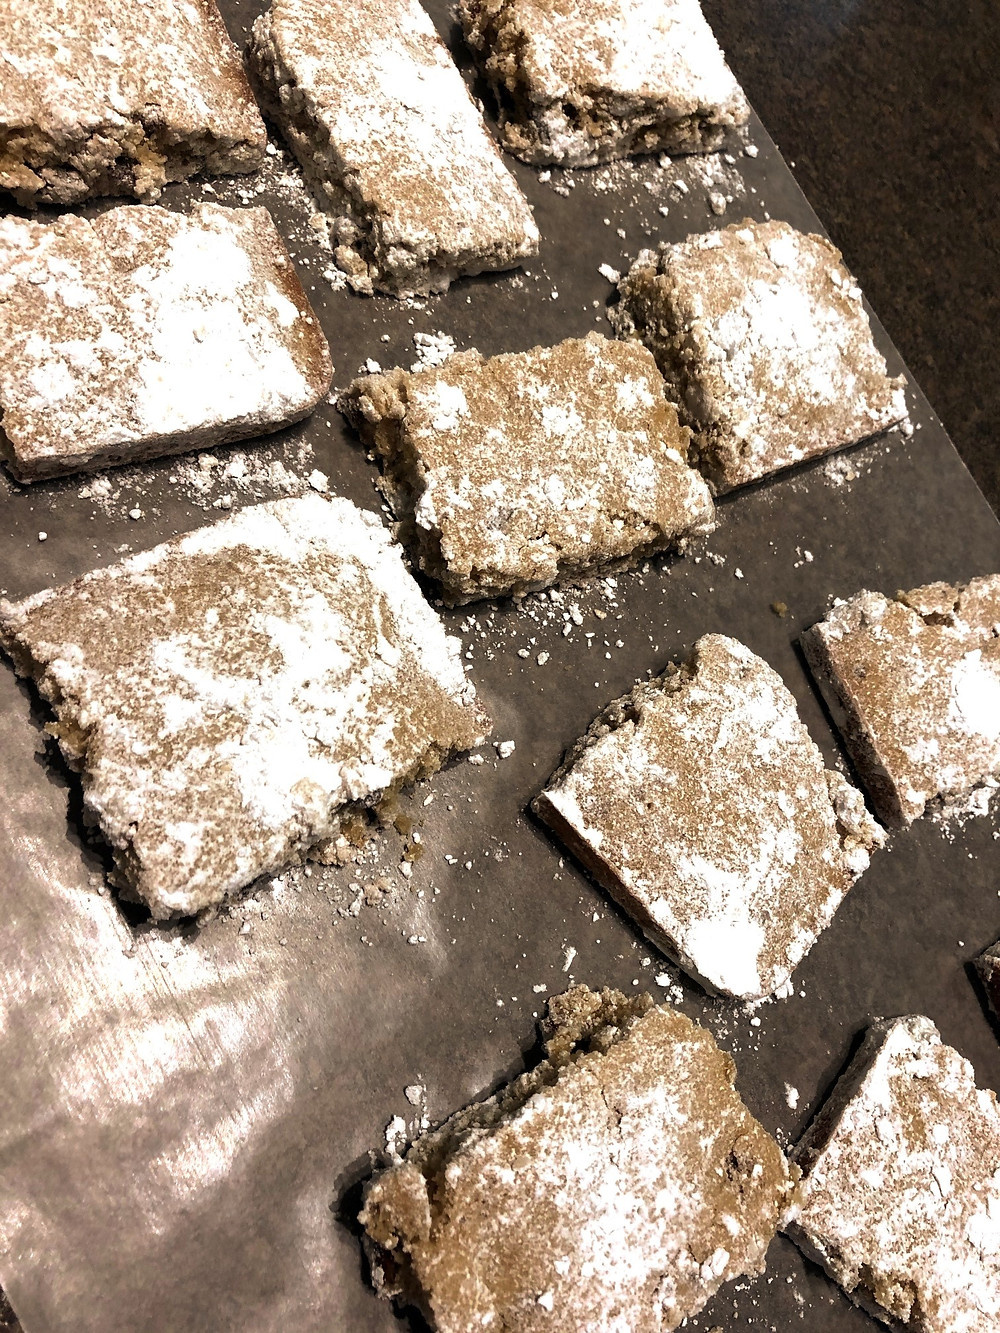 Rows of cookie-like bars sit on wax paper and are coated with white powdered sugar.